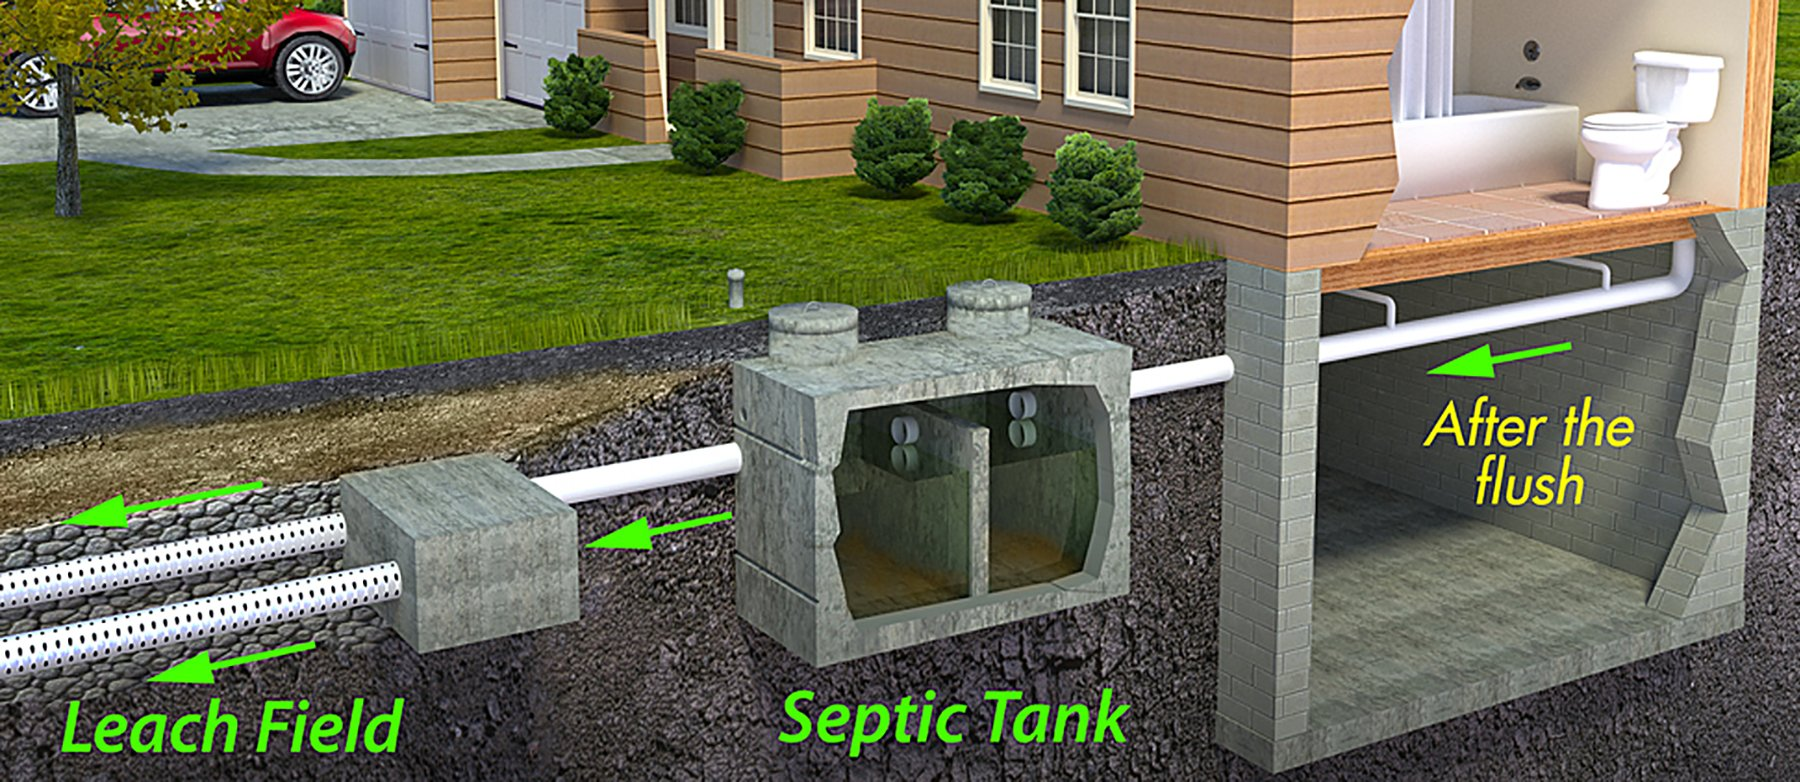 Did you know elaine kehoe for 1 bathroom septic tank